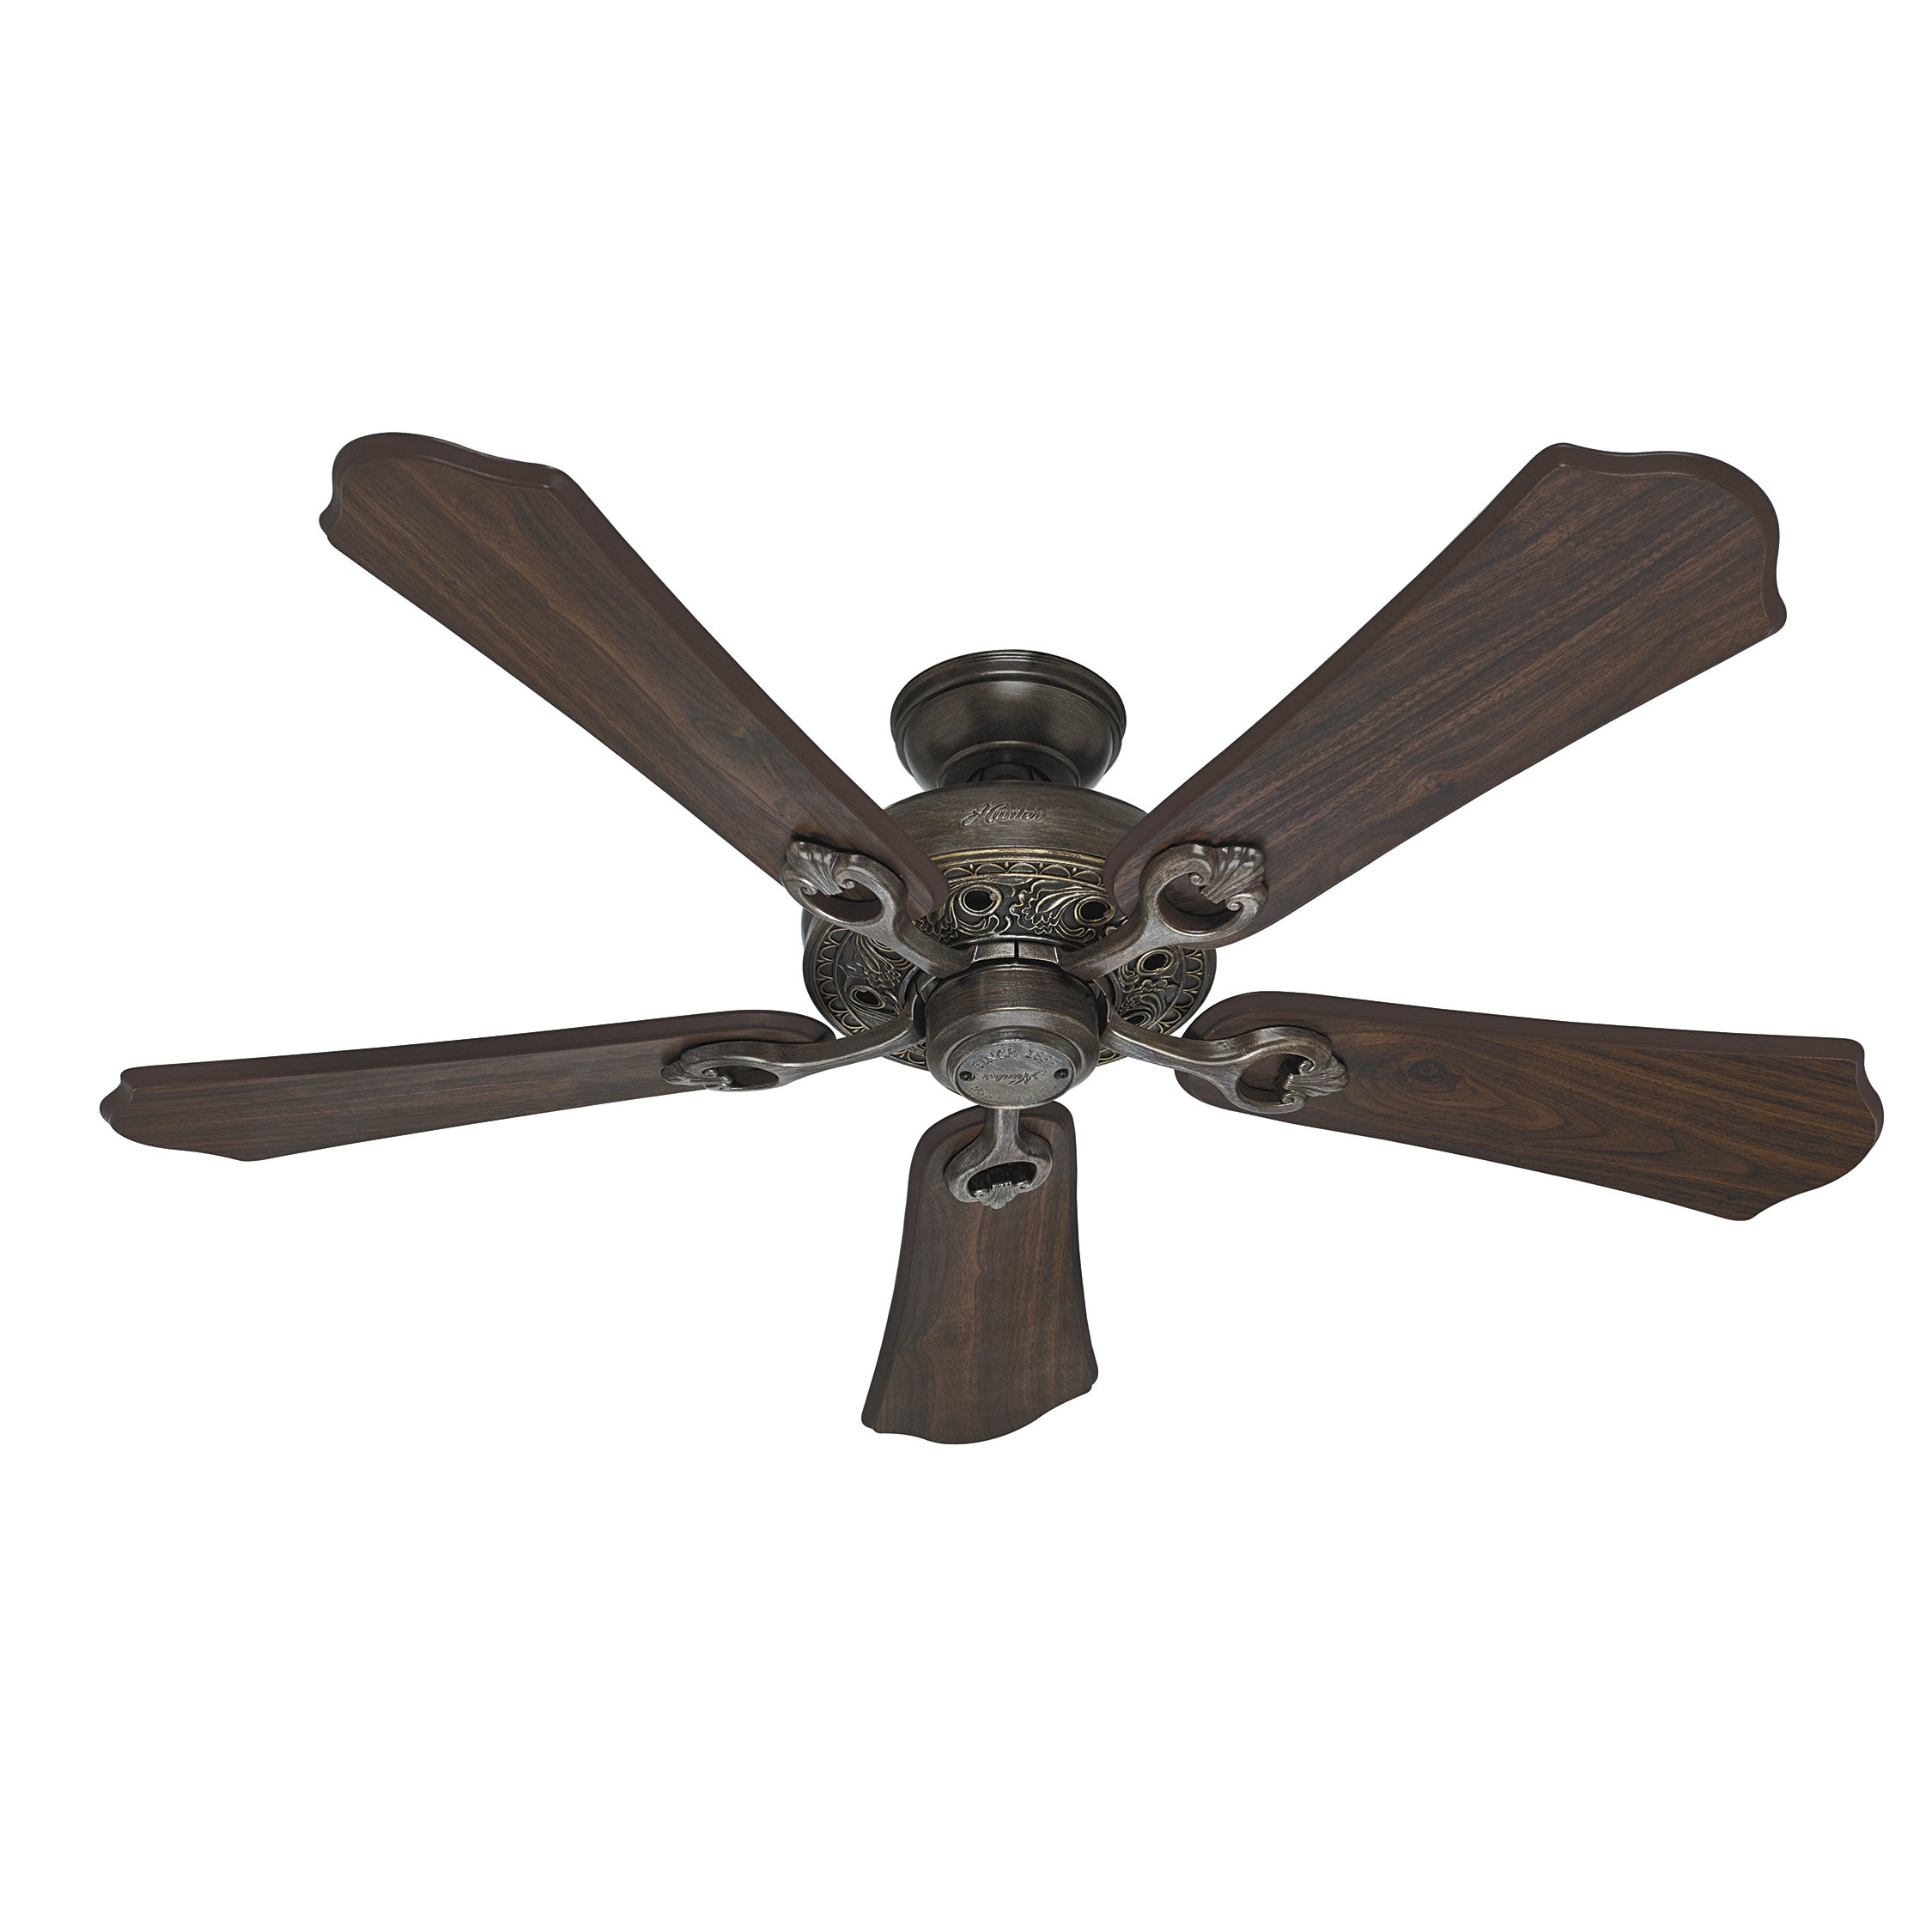 HUNTER FAN 52-inch Hunter Walnut 5-blade Kingsbury Roman Bronze Fan at Sears.com